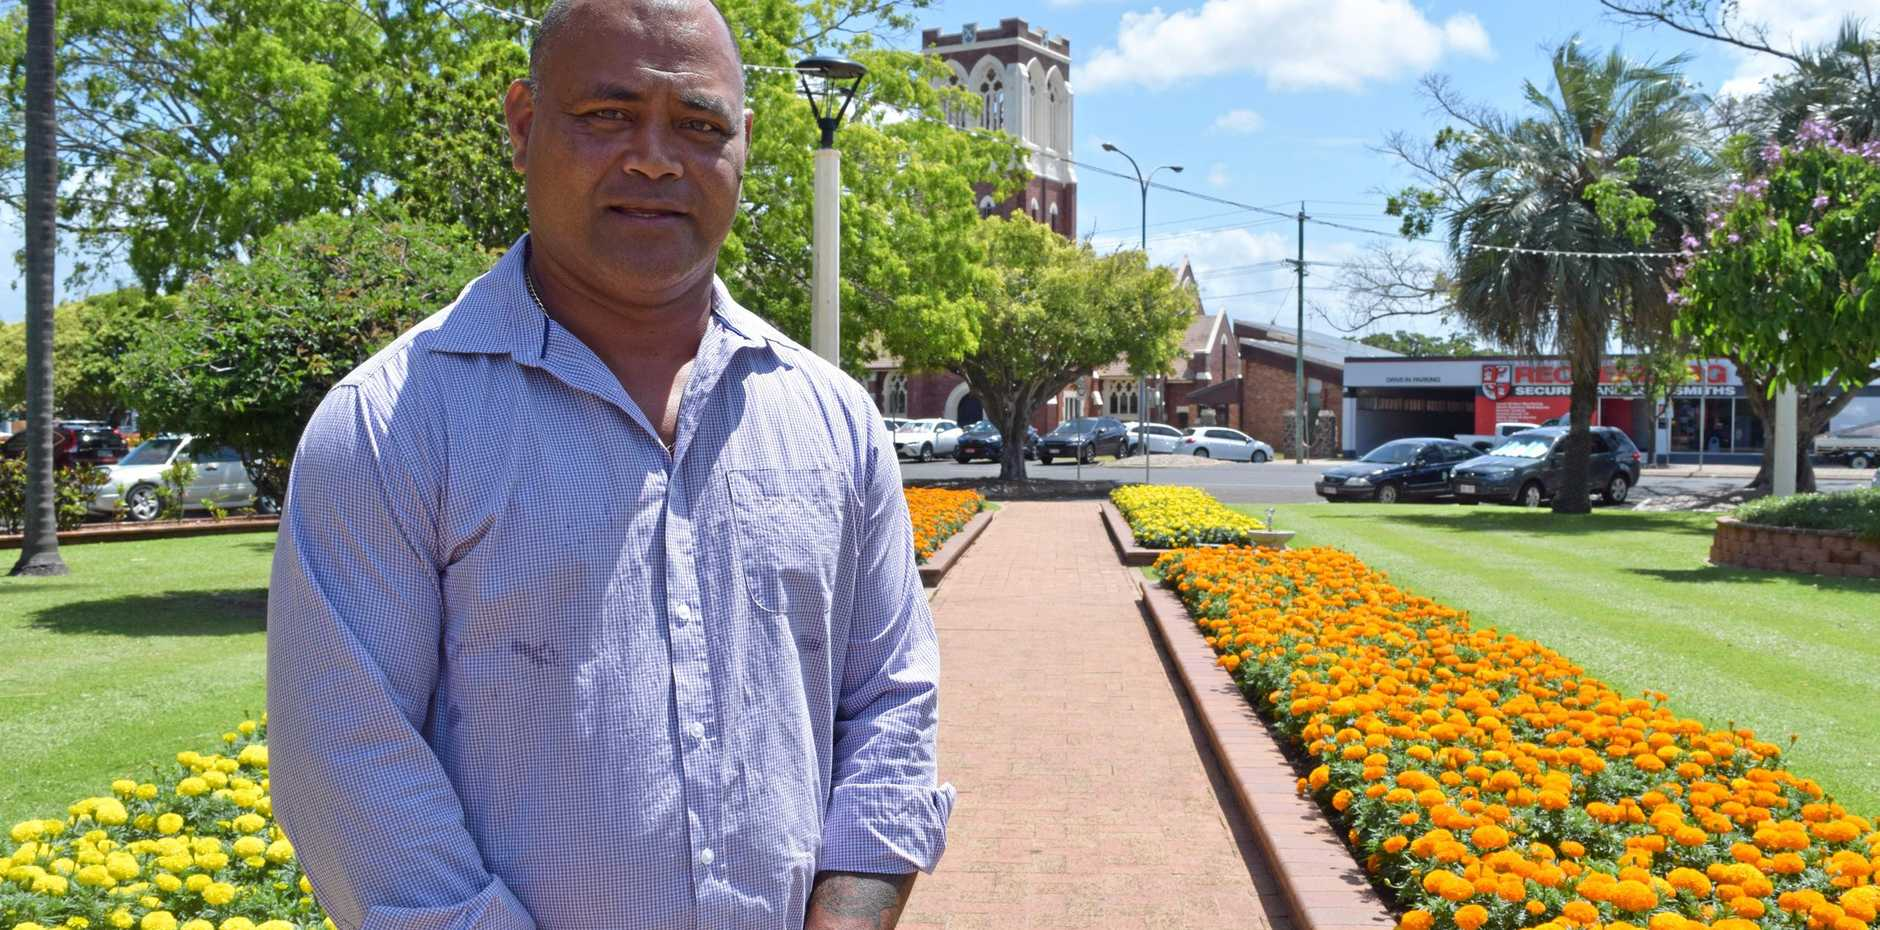 Moe Turaga has intentions to run as an independent candidate for Hinkler in the next federal election.